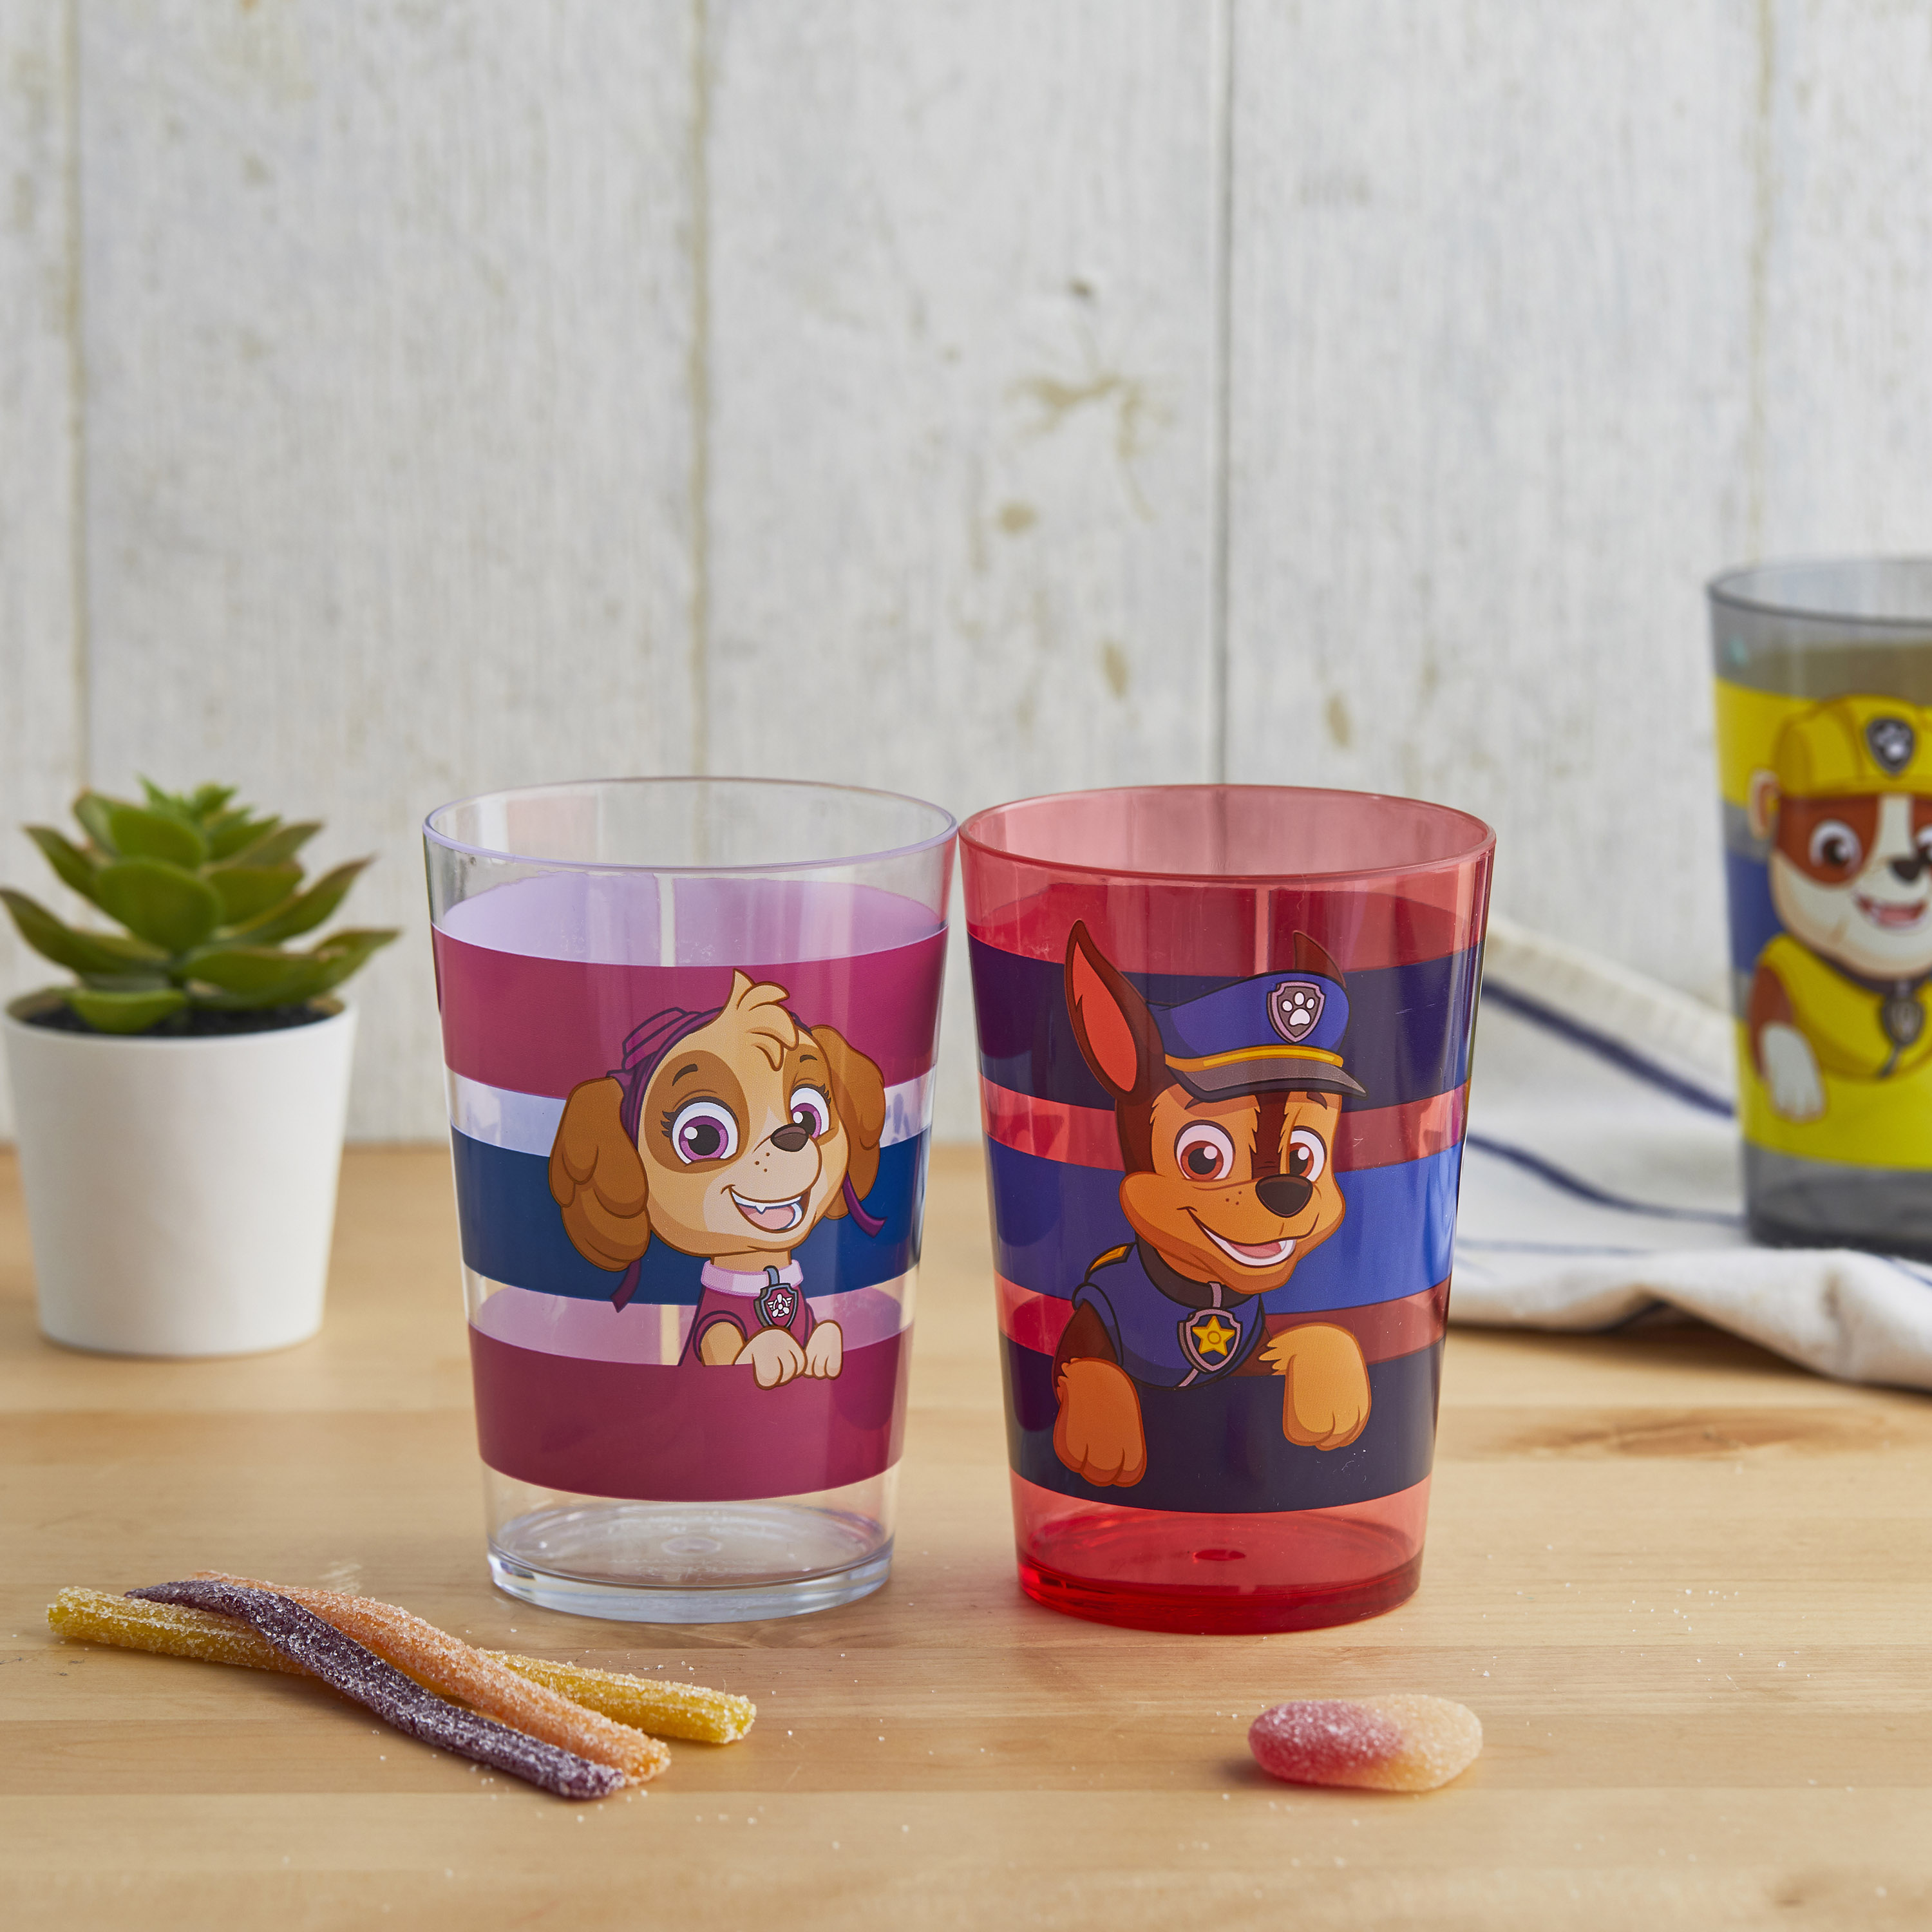 Paw Patrol 14.5 ounce Tumbler, Chase, Skye and Friends, 4-piece set slideshow image 4